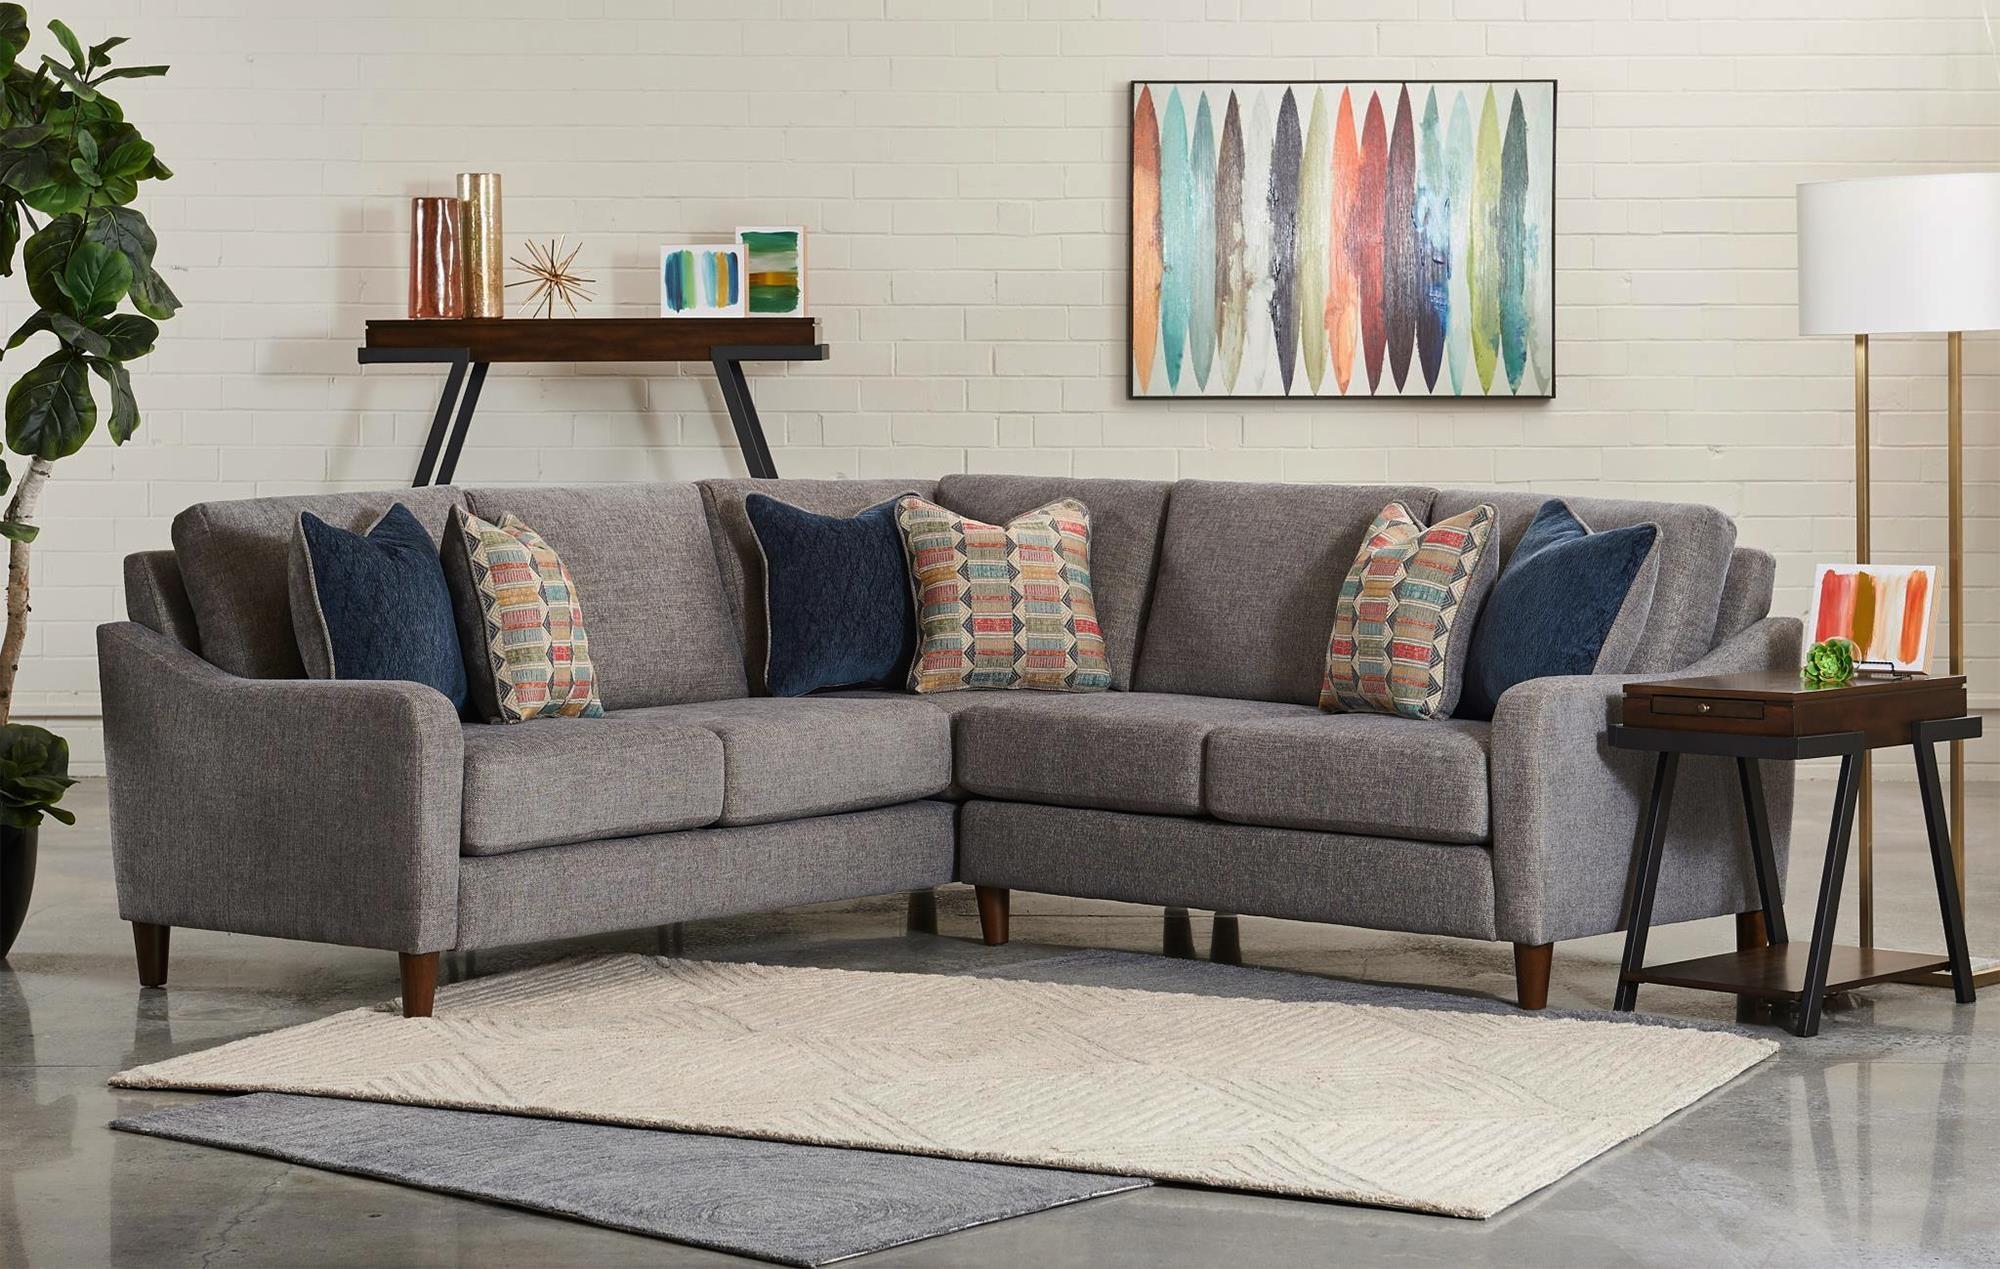 Coach 2PC Sectional Sofa at Rotmans